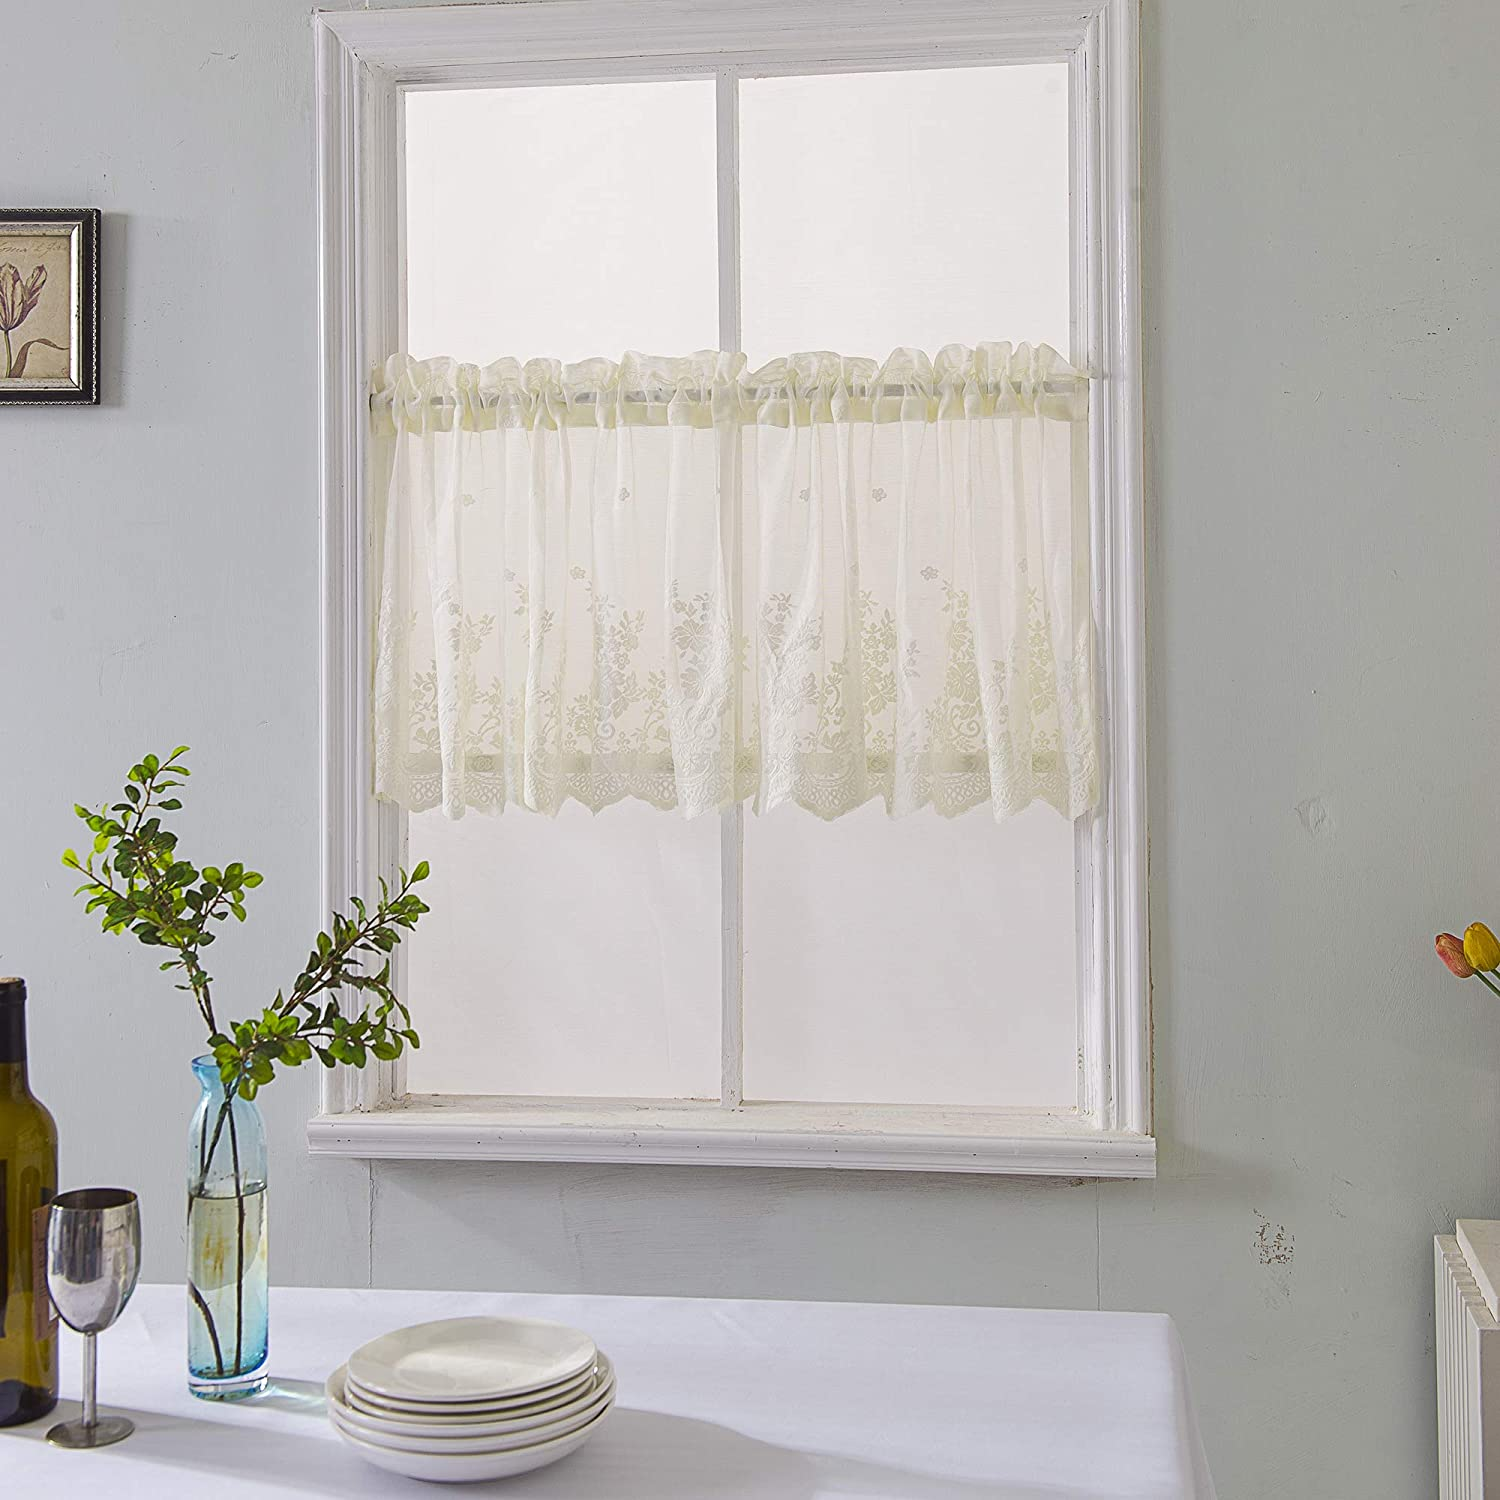 Atiming Lace Curtain Valances For Windows Beige Semi Sheer Valance Curtains Embroidery Valances For Kitchen Cafe Dining Room Windows Valances 29x24inch Amazon Co Uk Kitchen Home